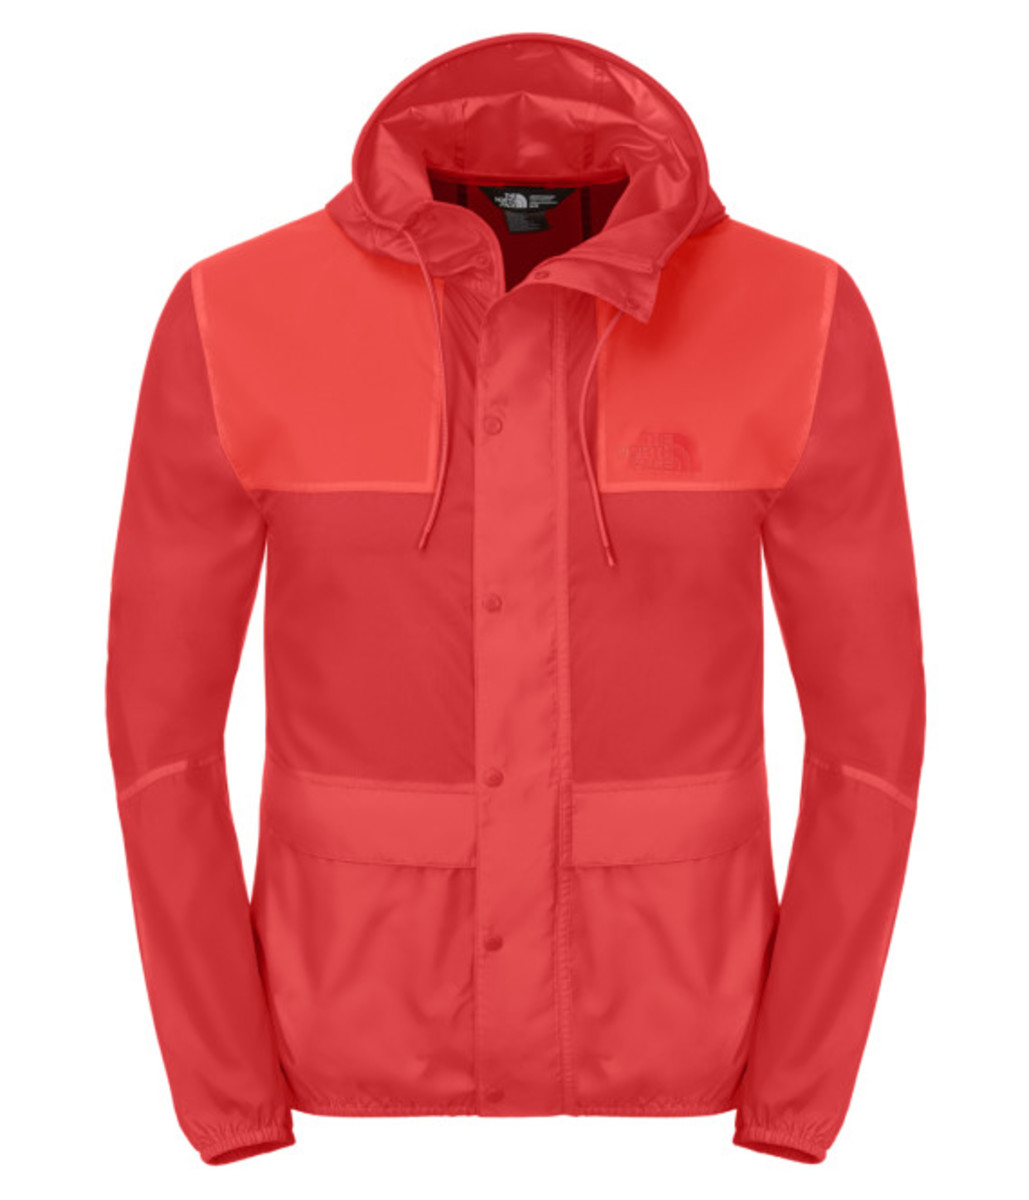 the-north-face-mountain-jacket-10